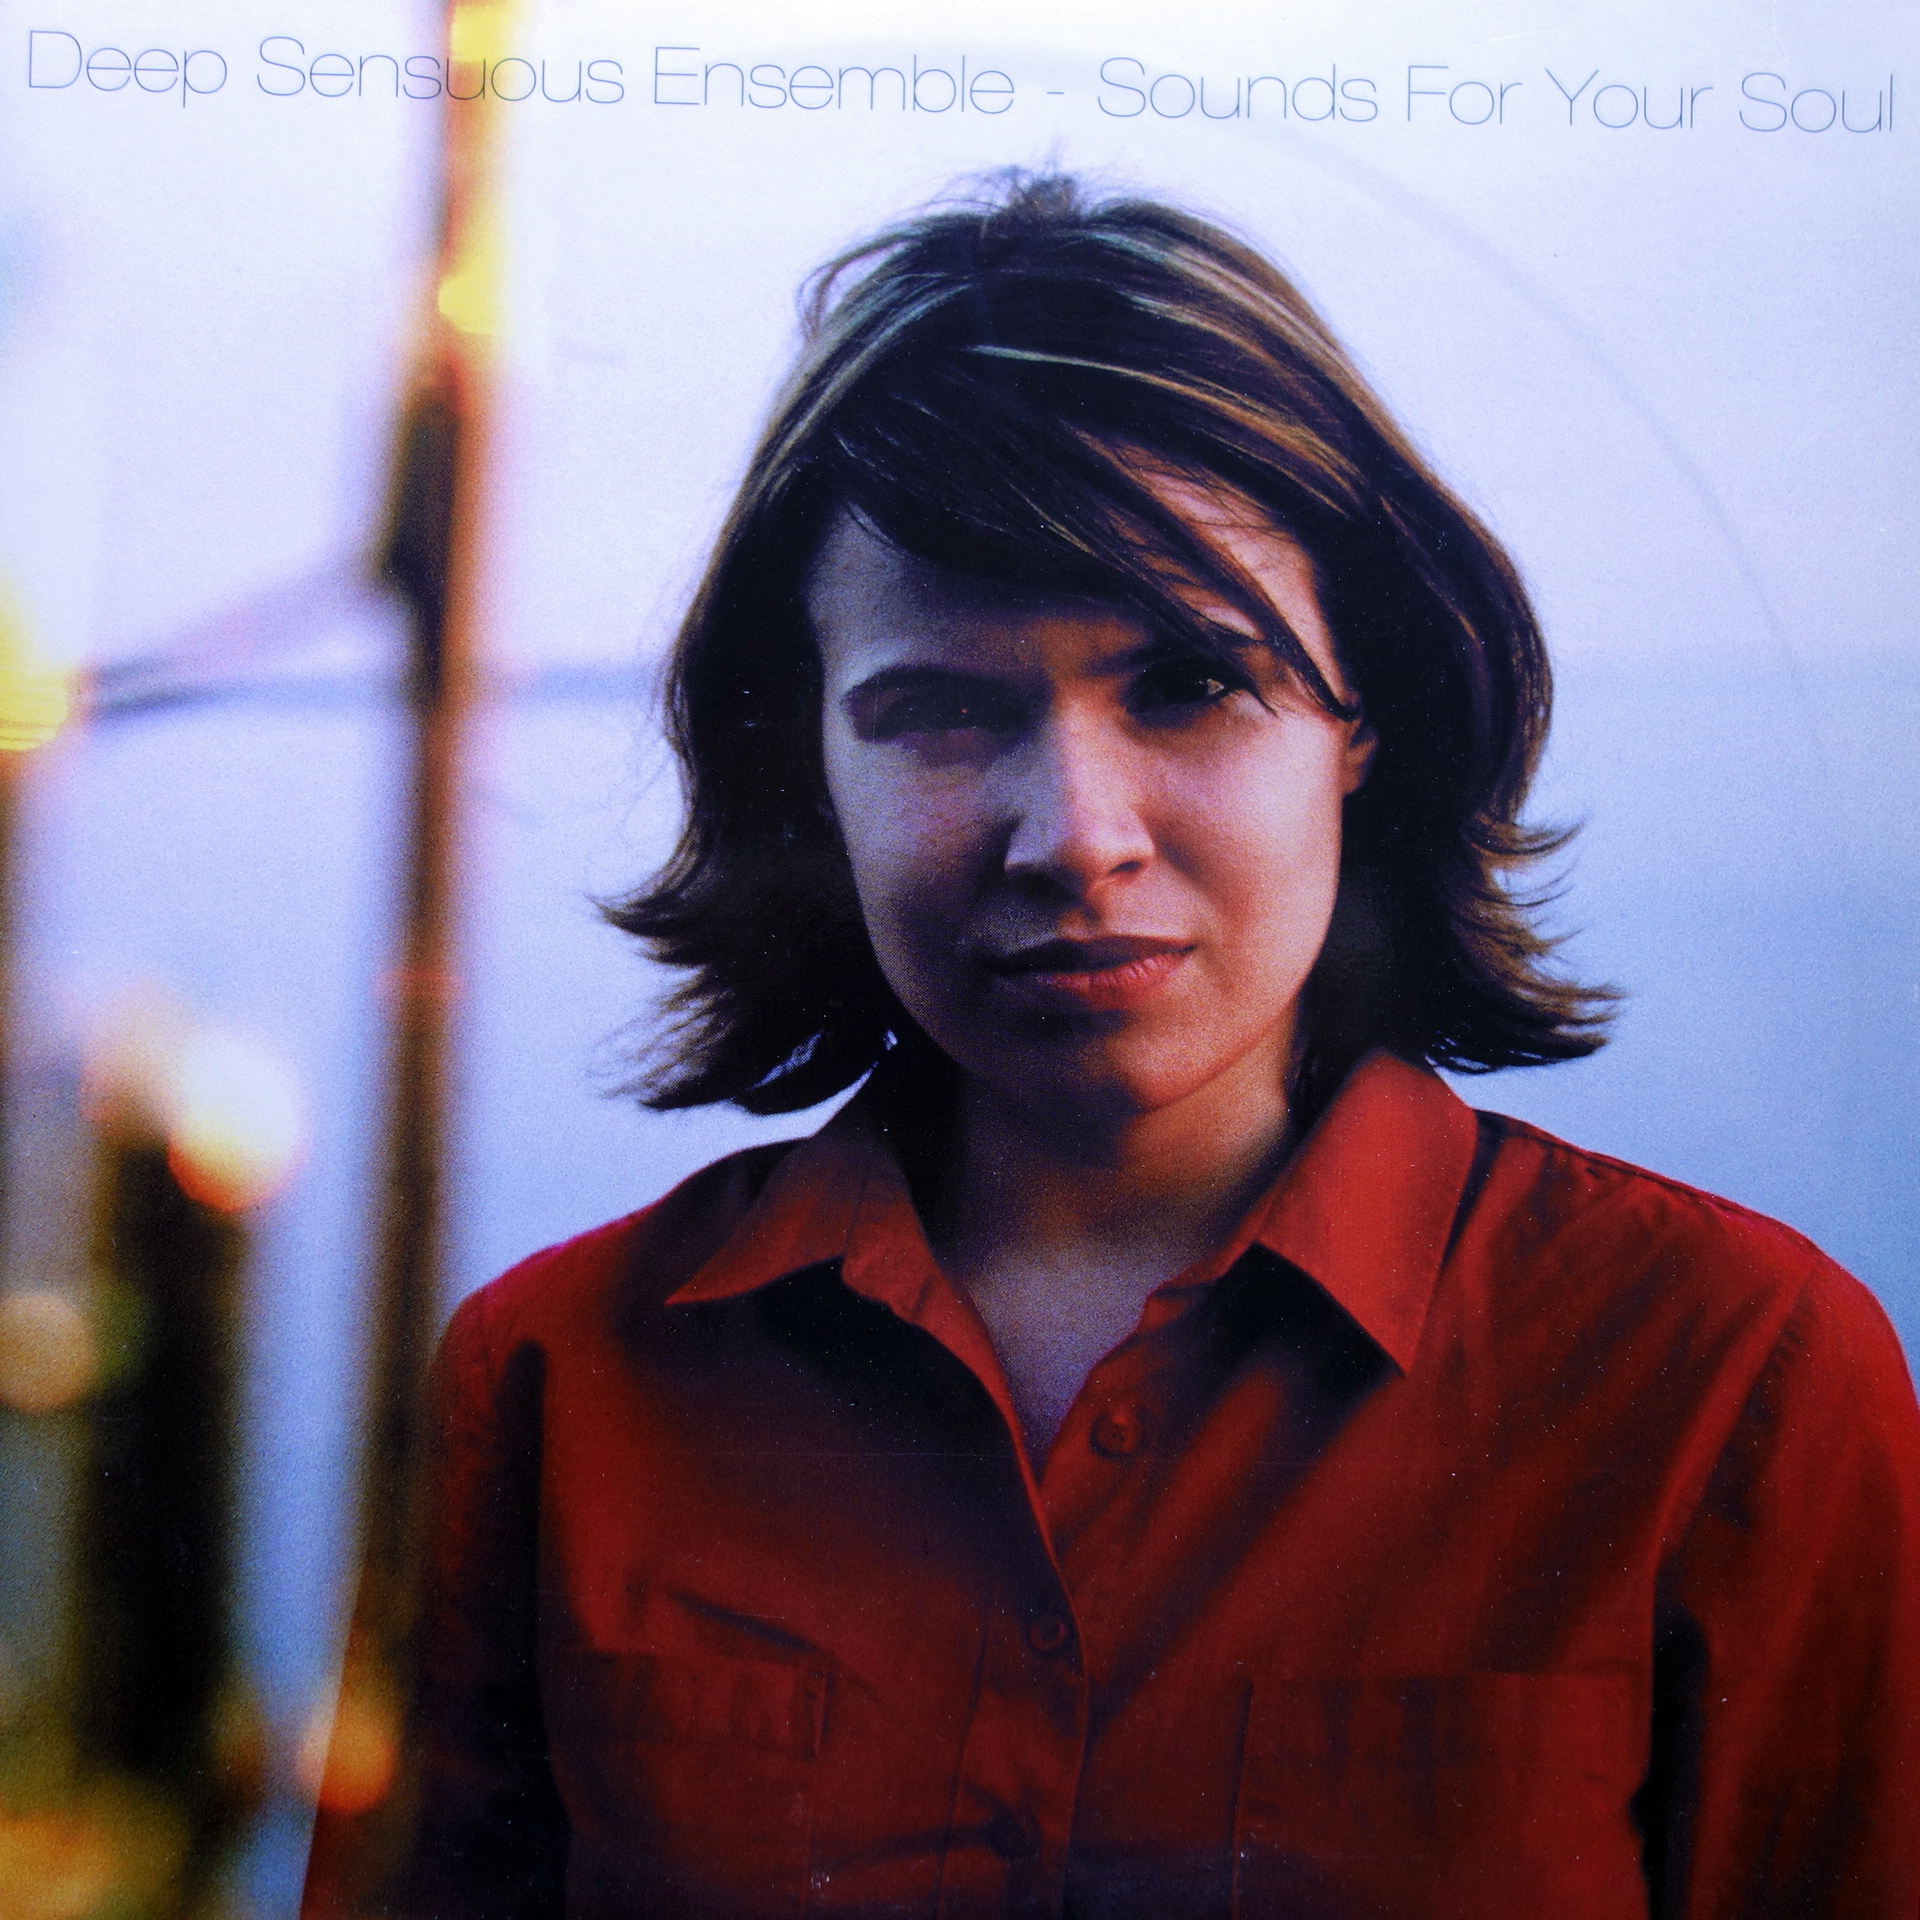 2xLP Deep Sensuous Ensemble ‎– Sounds For Your Soul